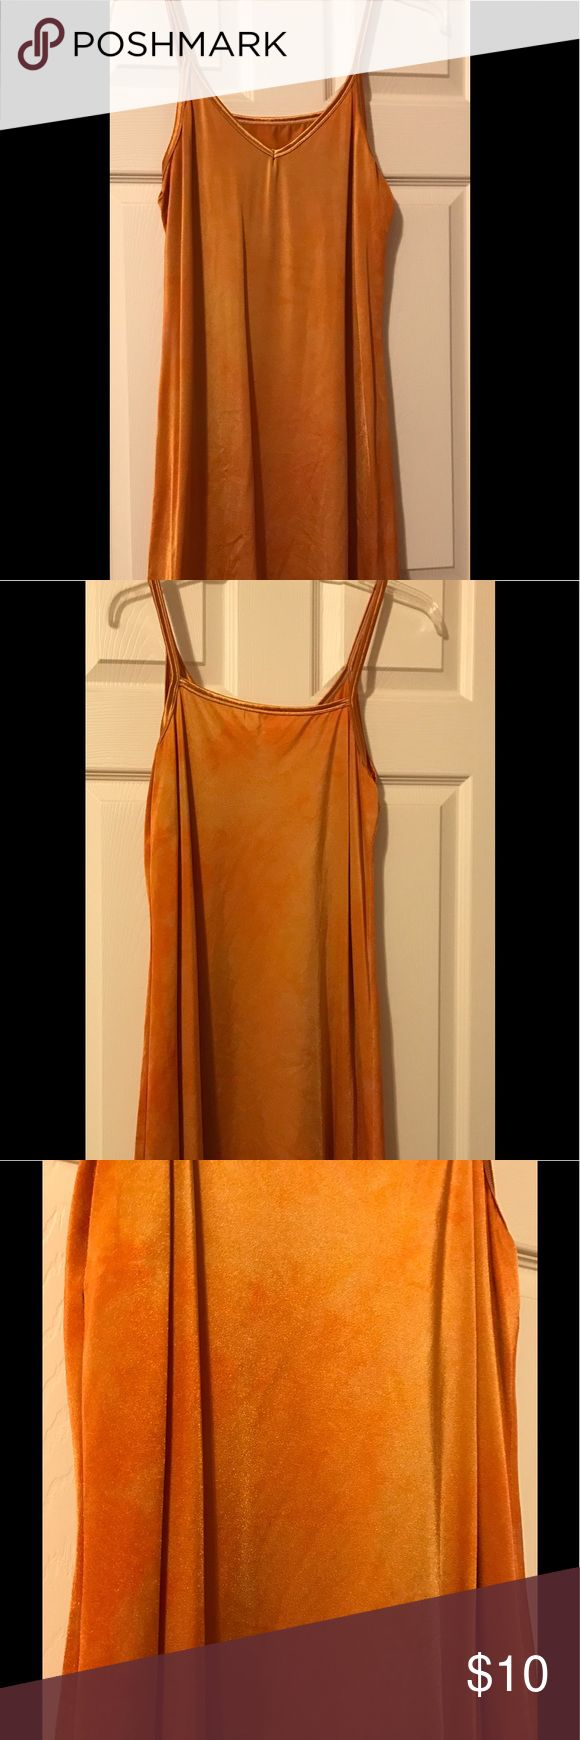 Orangish gold underslip This underslip is great worn under a see-thru or lace tunic. It was originally a 'nude' color but after my mother-in-law thought I was indeed nude under my lace dress, I dyed it orange!  It came out with a cool tie dyed effect. Vanity Fair.  Intimates & Sleepwear Chemises & Slips